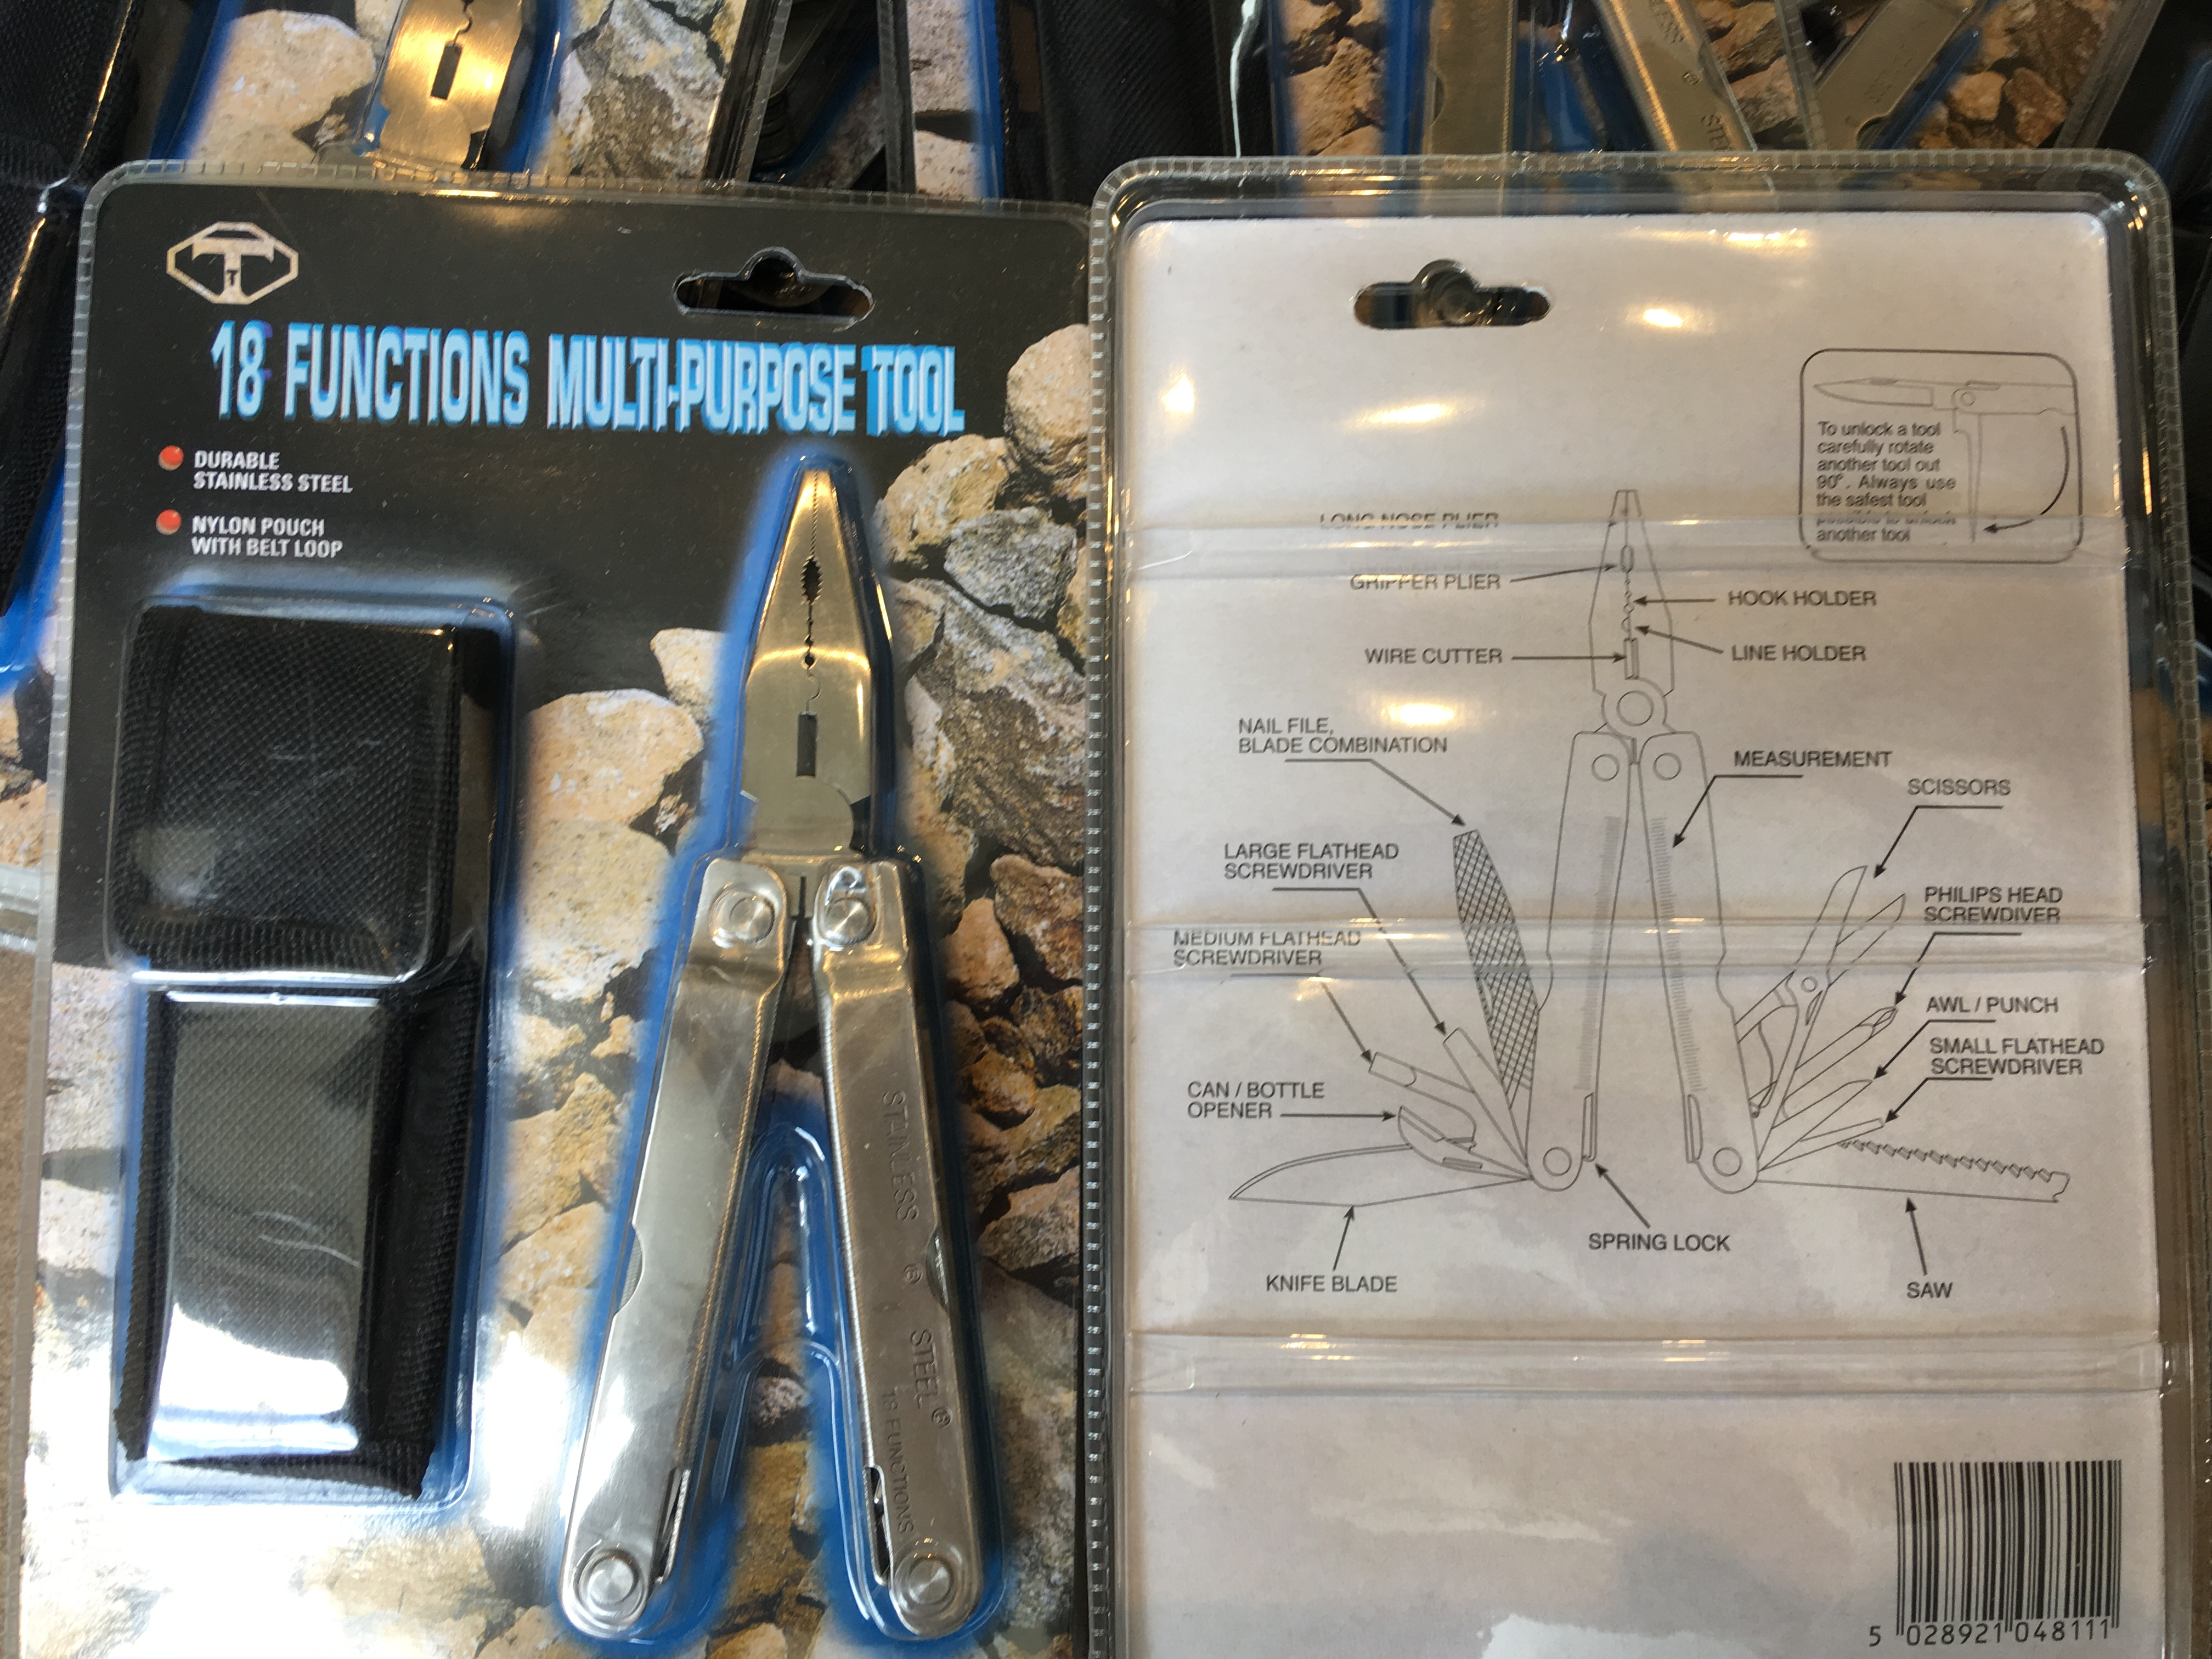 JOBLOT OF 48 x 18 FUNCTION MULTITOOL STAINLESS STEEL WITH NYLON POUCH